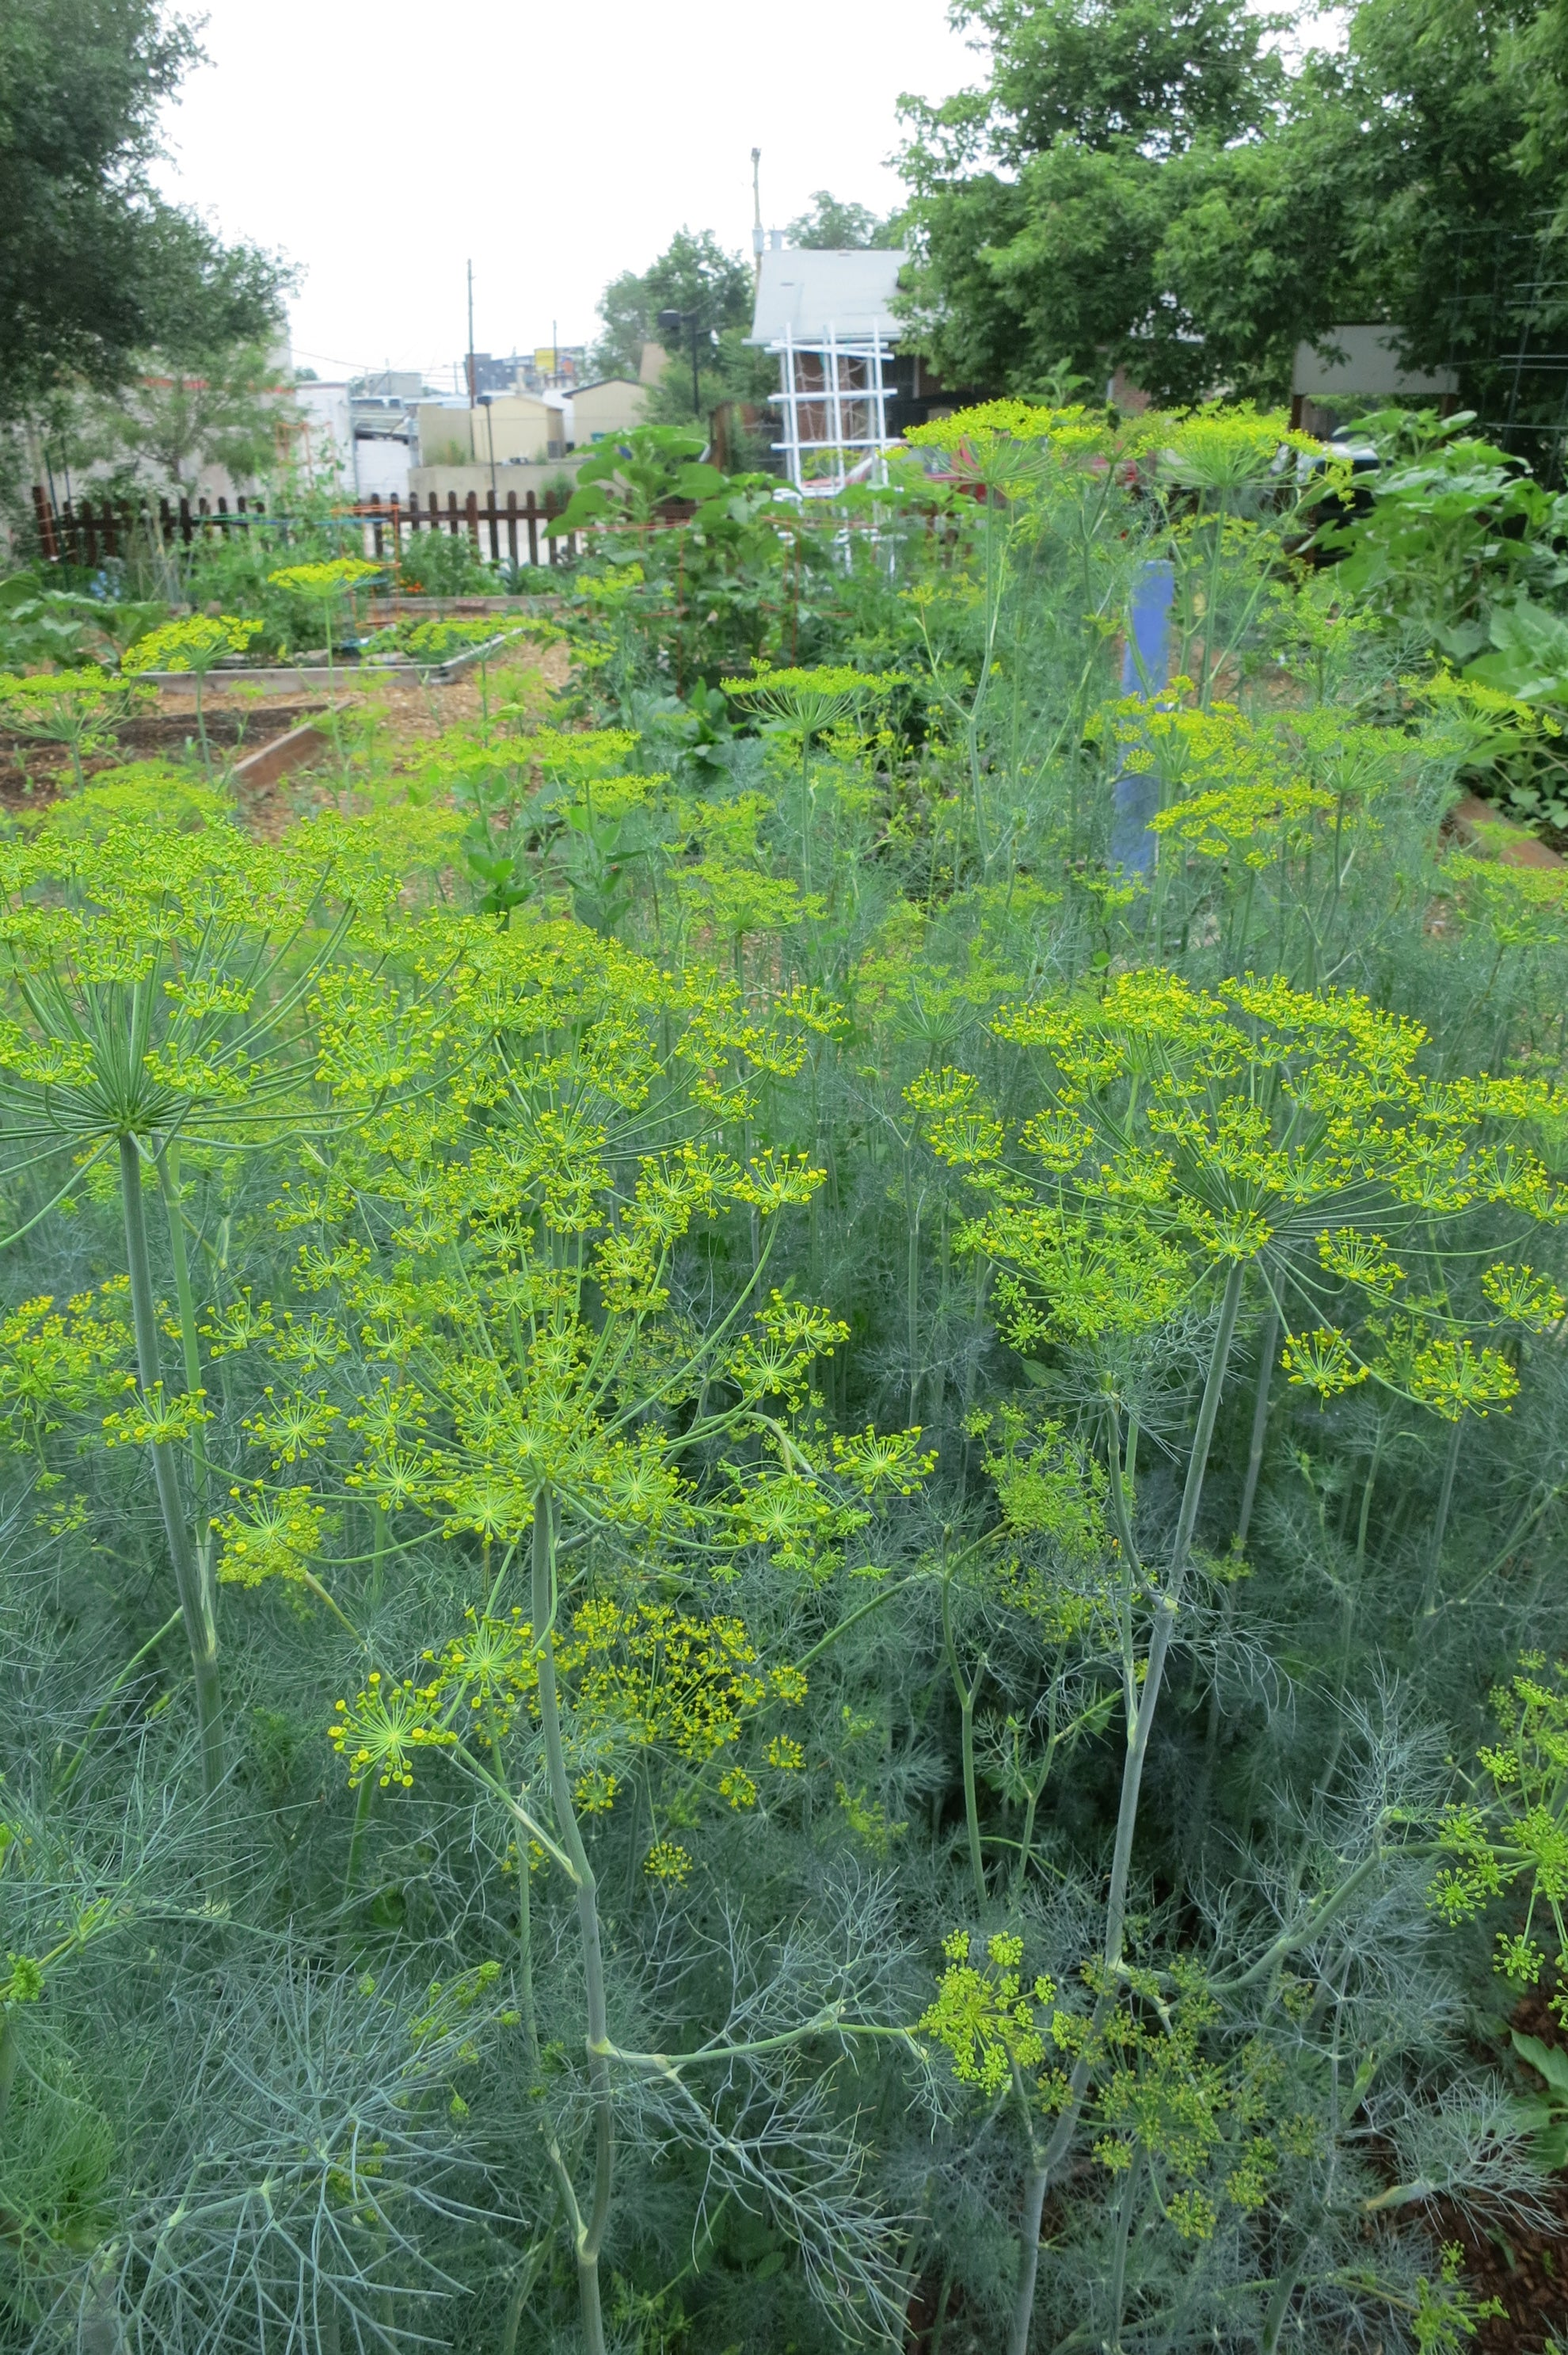 Dill Patch near Tomatoes for natural Hornworm Control - Trap Crop